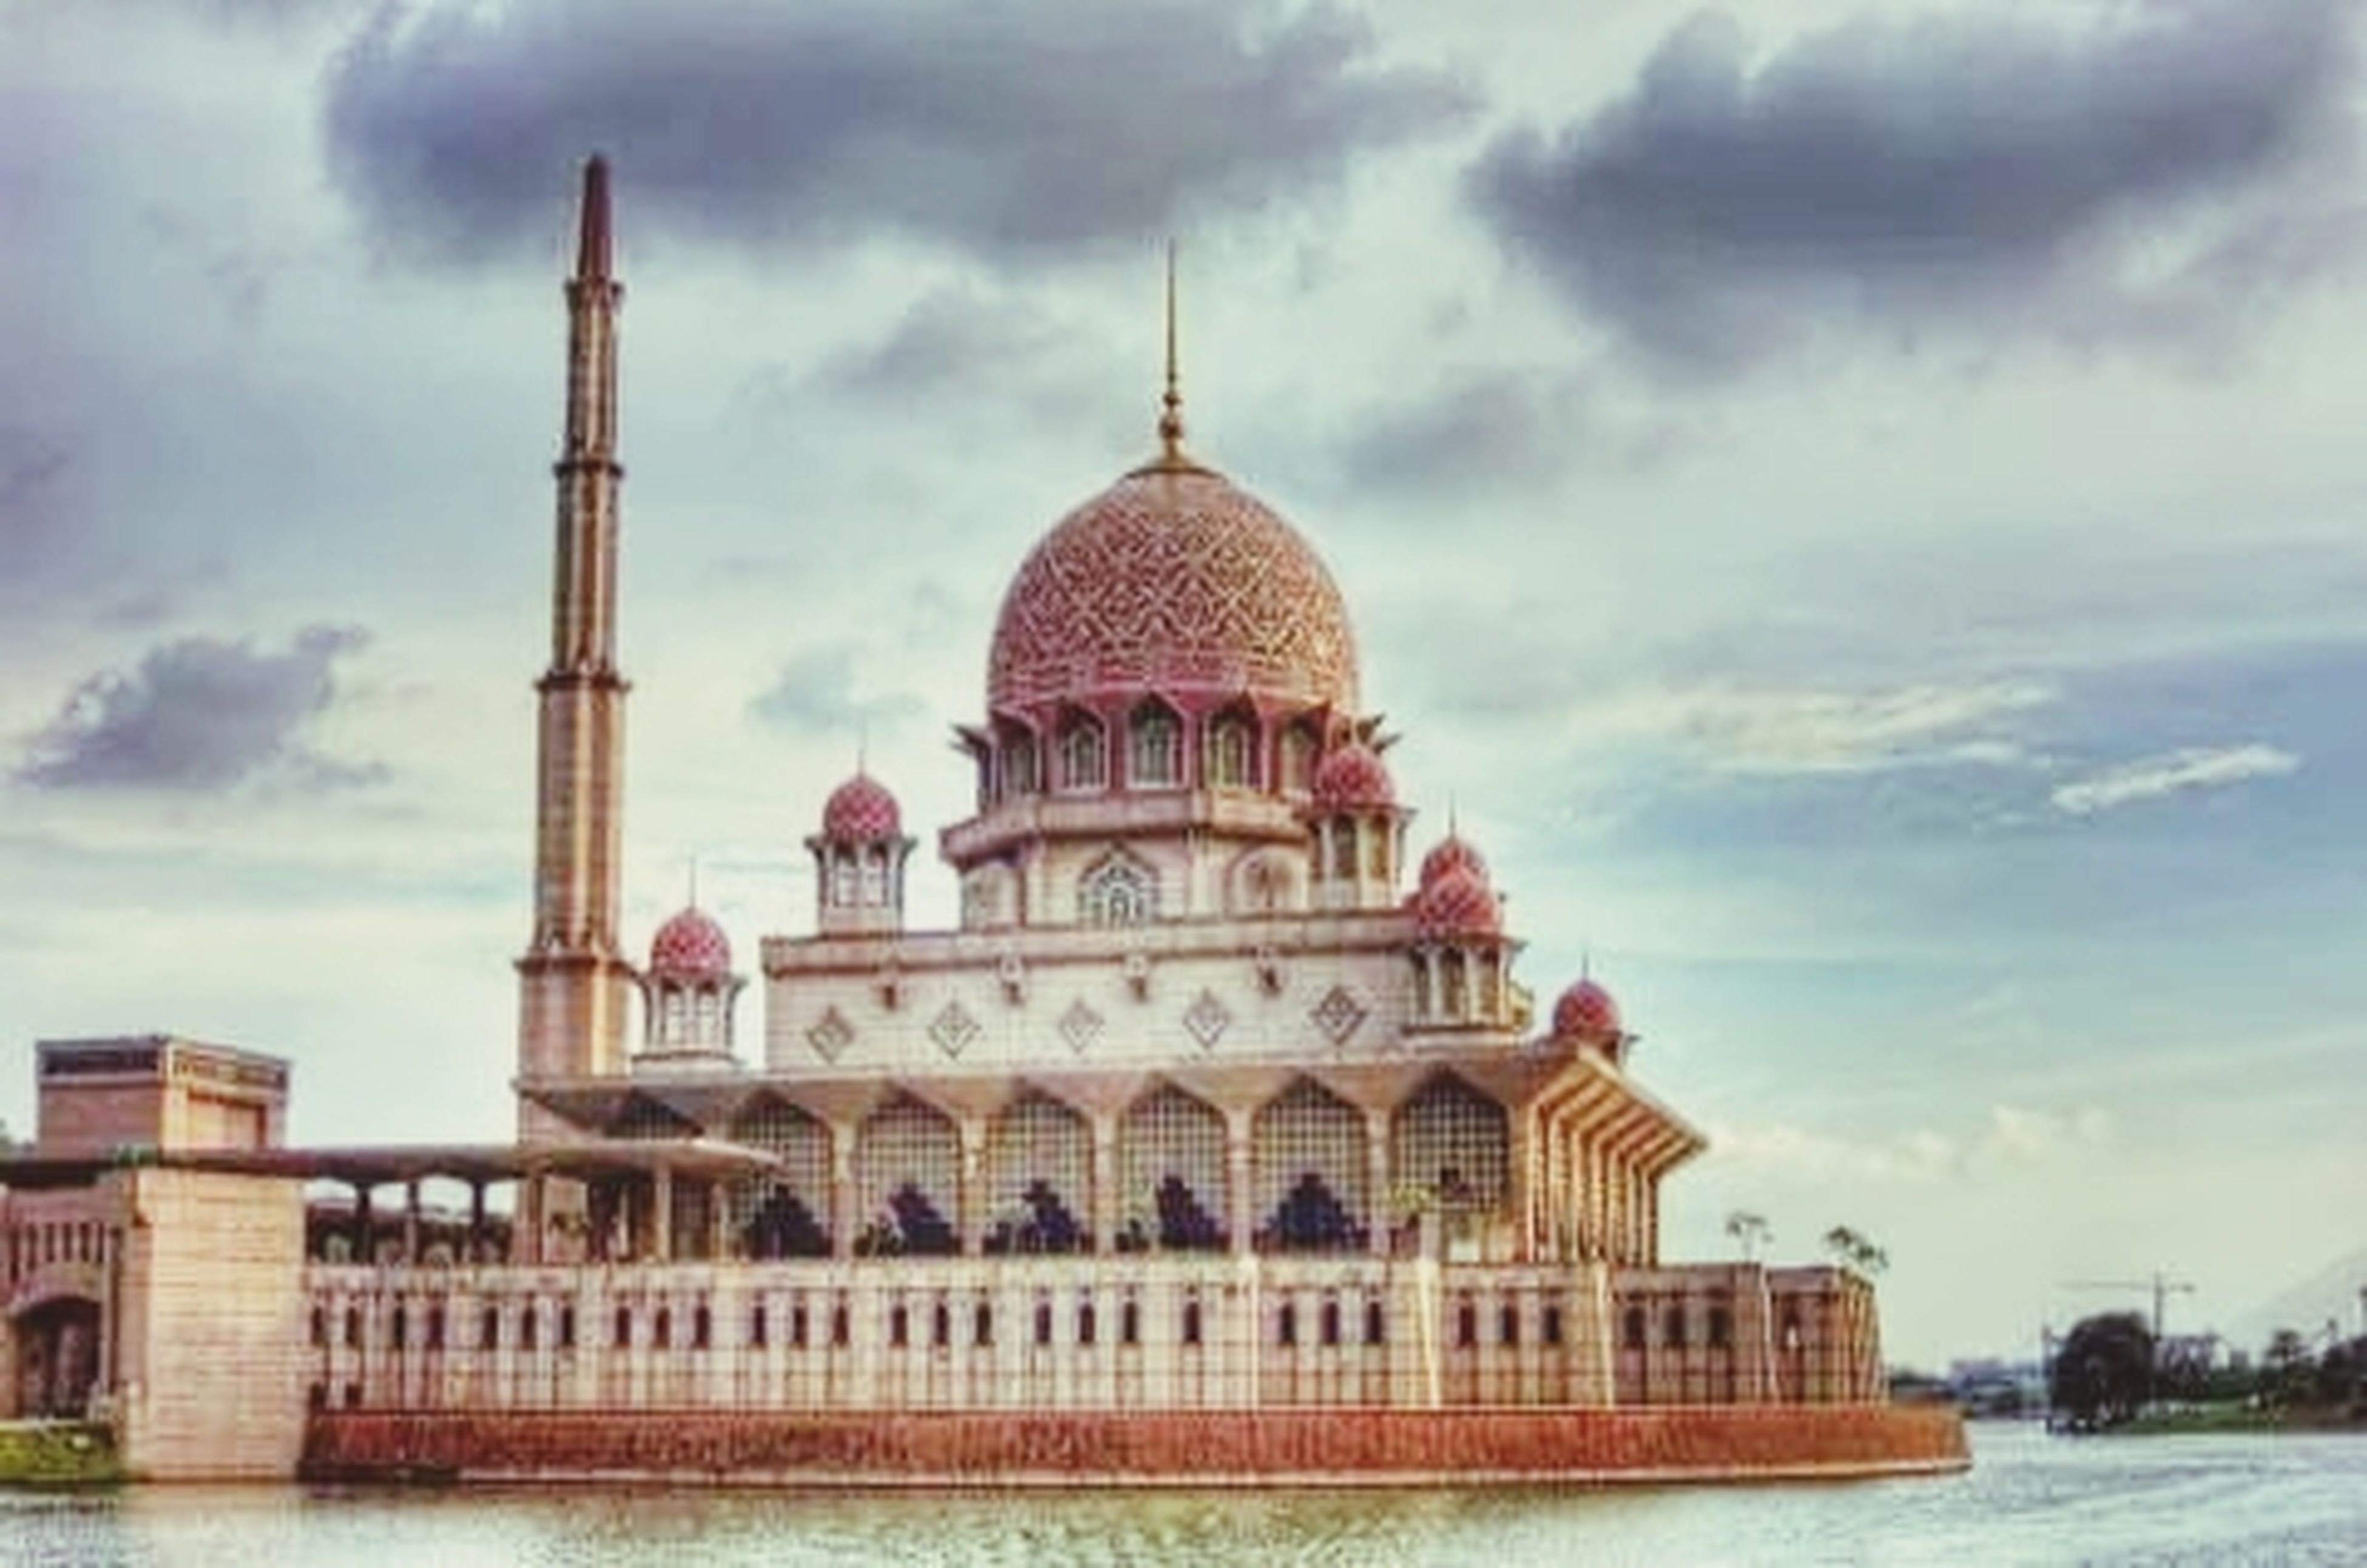 architecture, place of worship, built structure, building exterior, religion, spirituality, dome, sky, church, famous place, cloud - sky, travel destinations, cathedral, tourism, travel, cloudy, mosque, islam